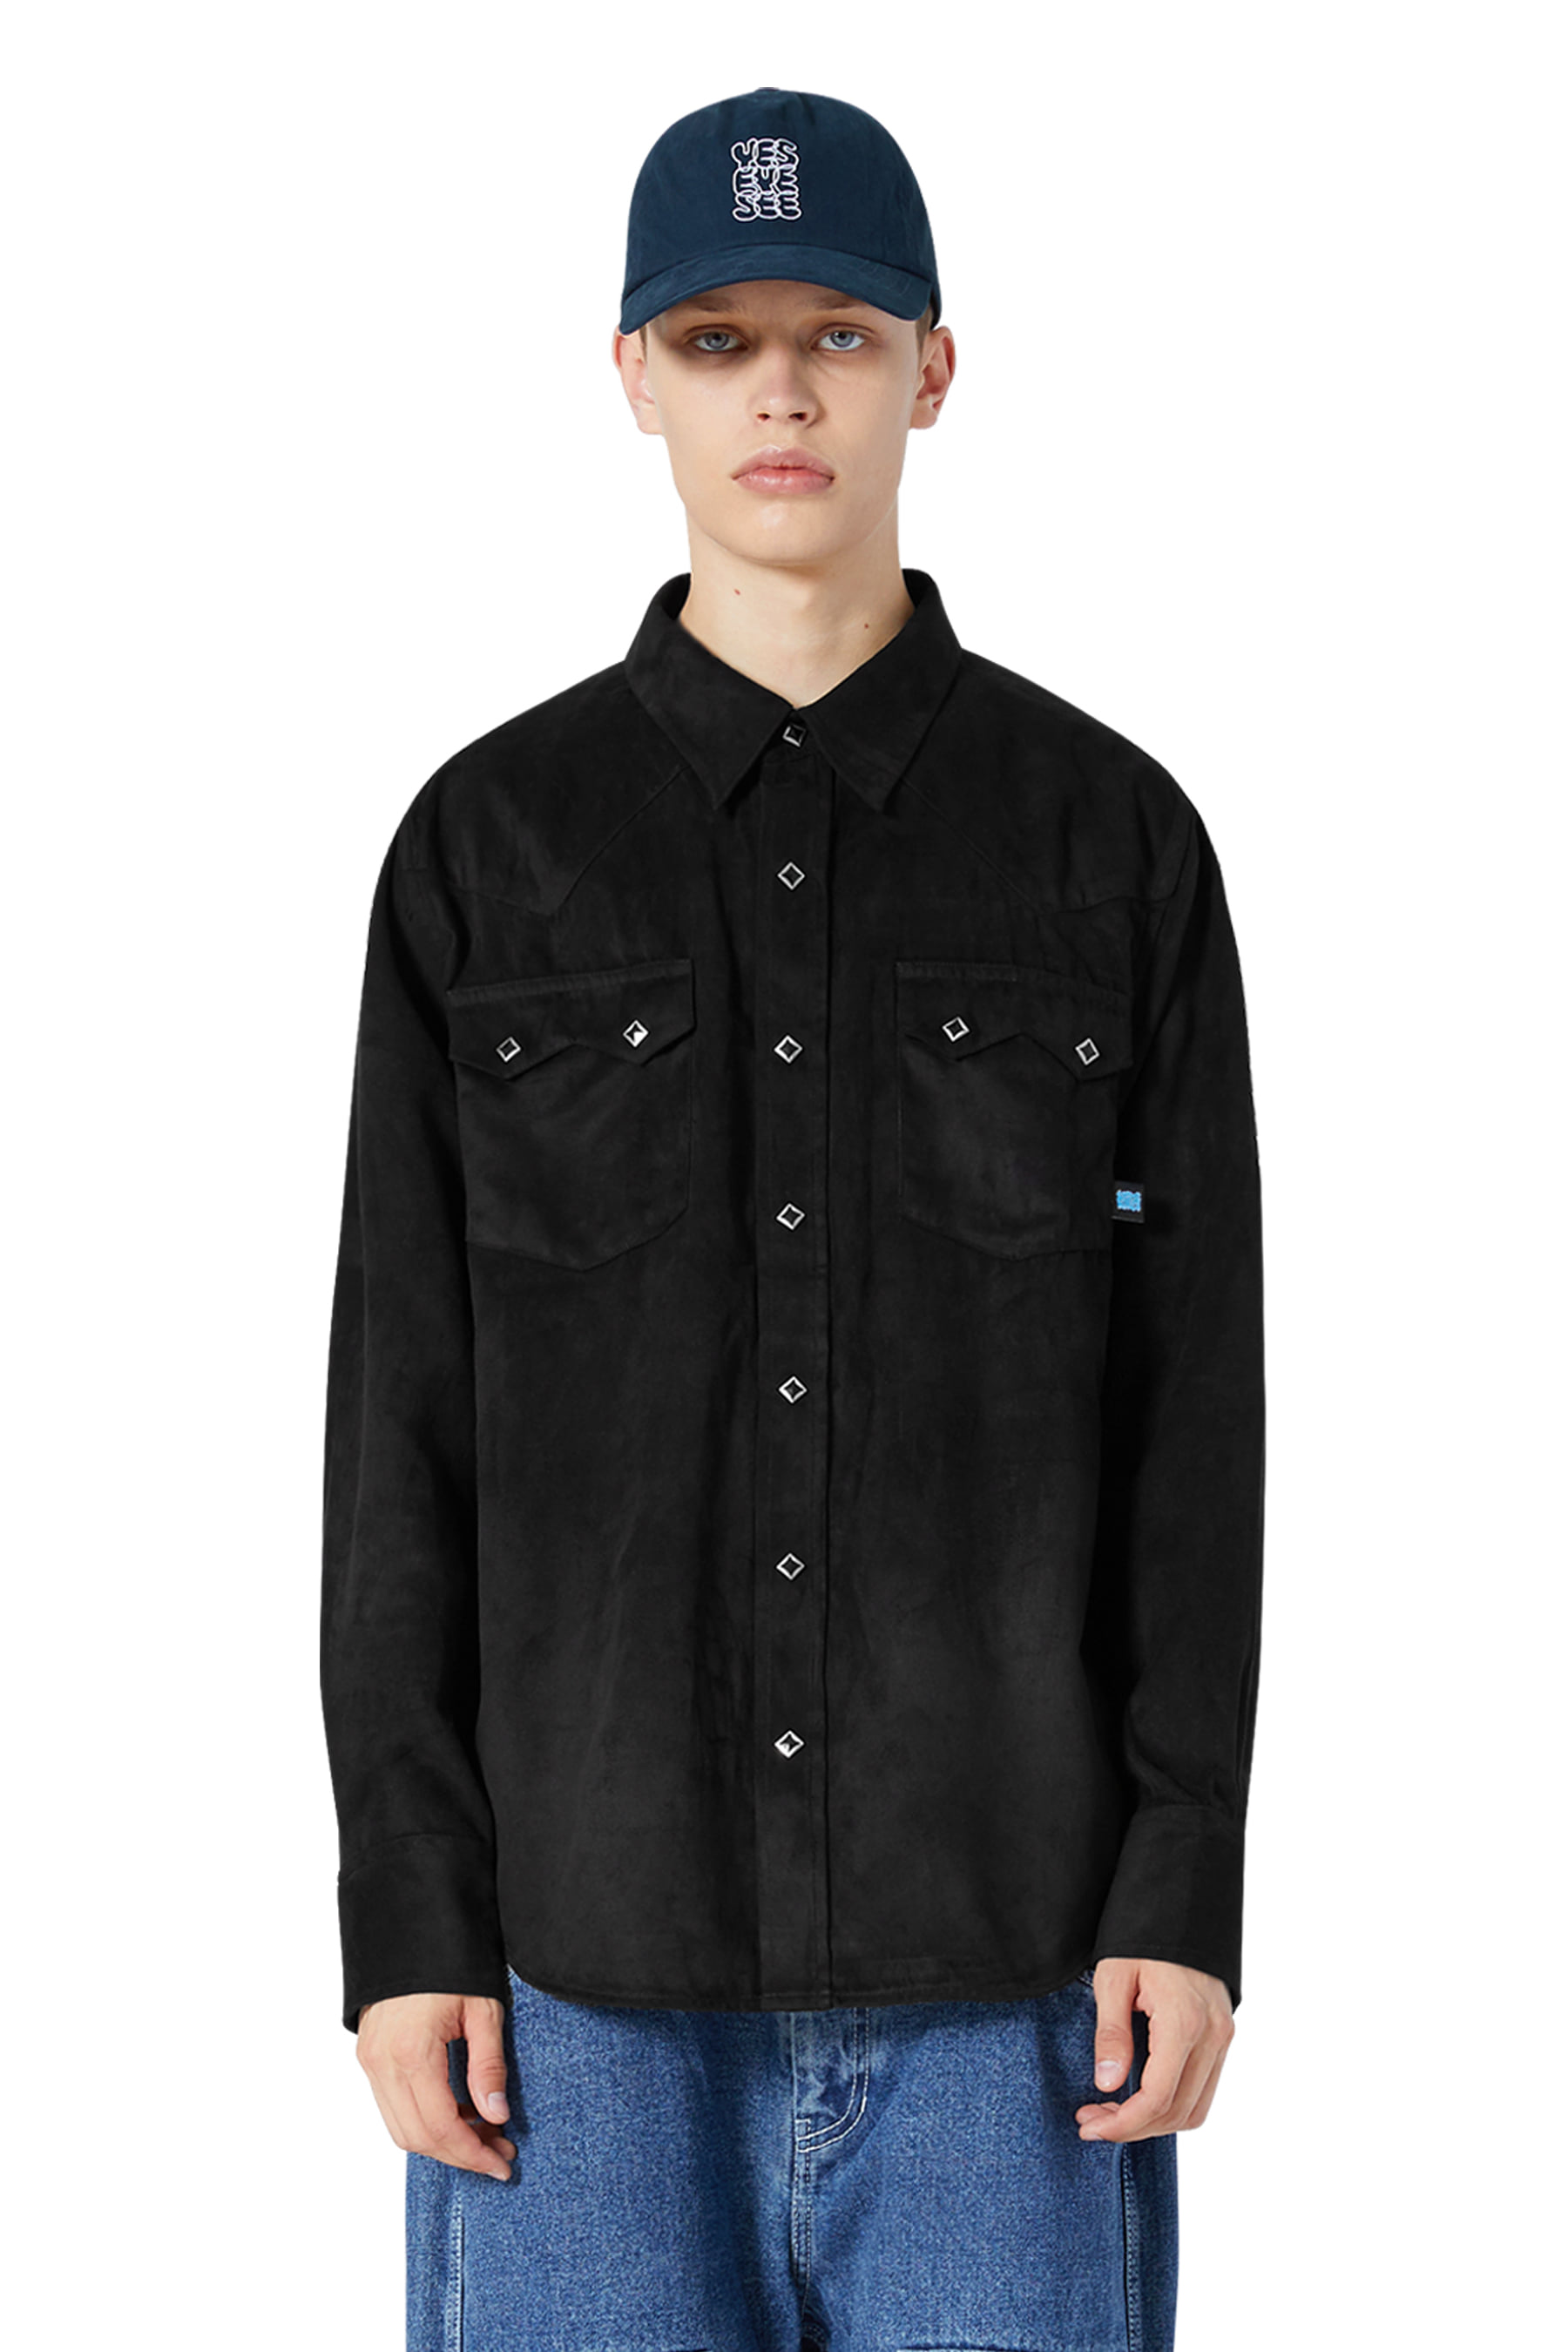 Y.E.S Suade Shirts Black